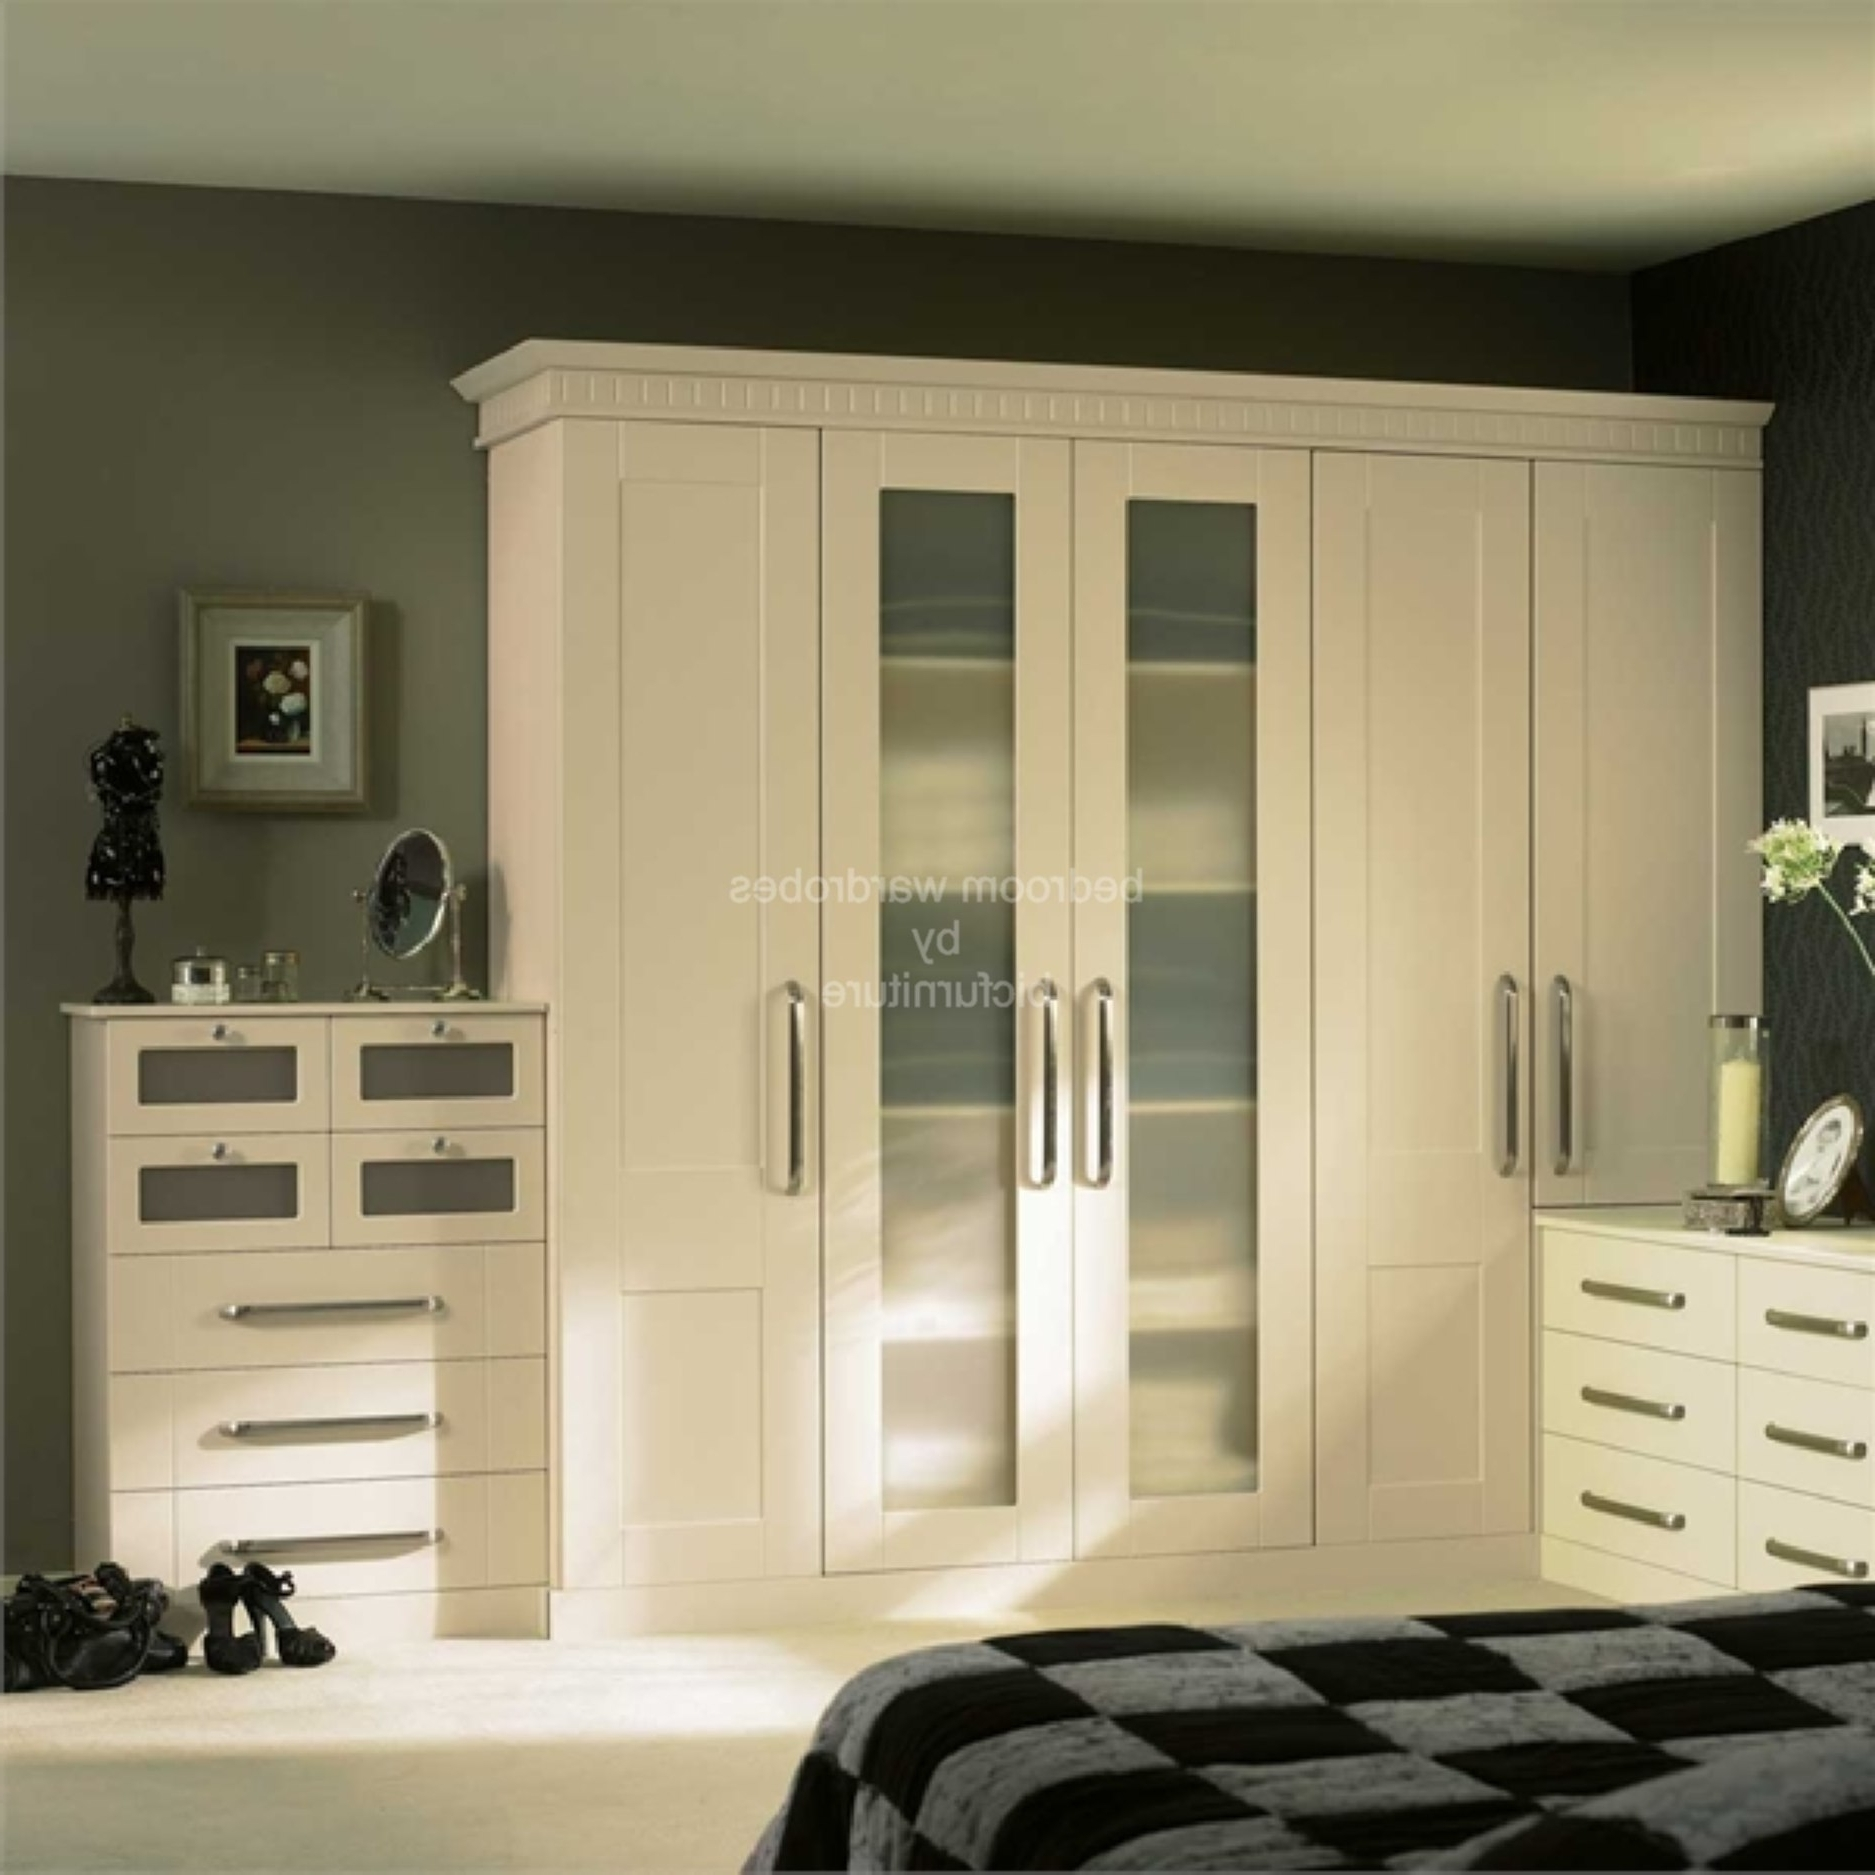 5 Door Wardrobes Bedroom Furniture Regarding Most Up To Date 5 Door Wardrobe Bedroom Furniture (View 14 of 15)